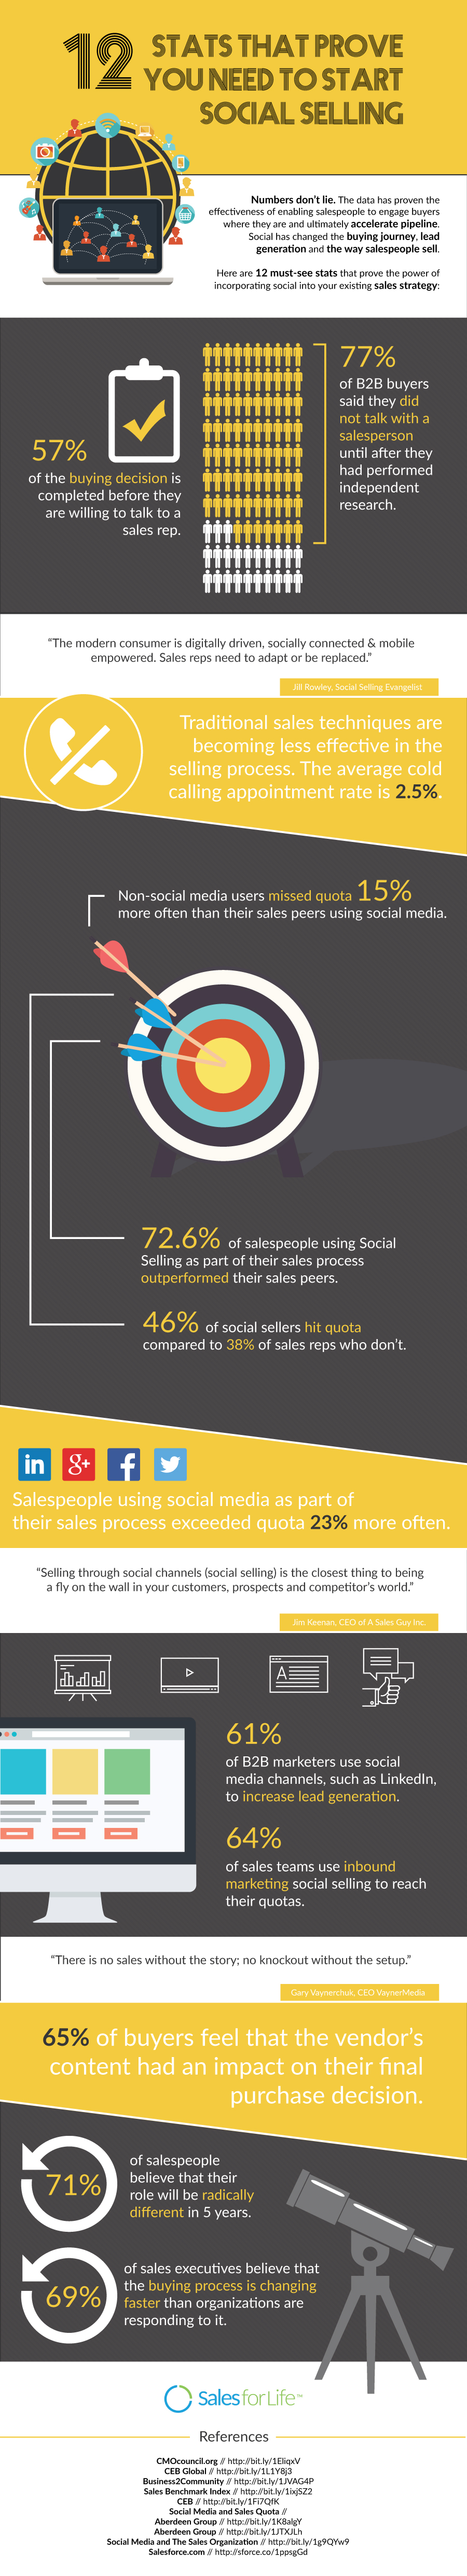 12-stats-that-prove-you-need-to-start-social-selling